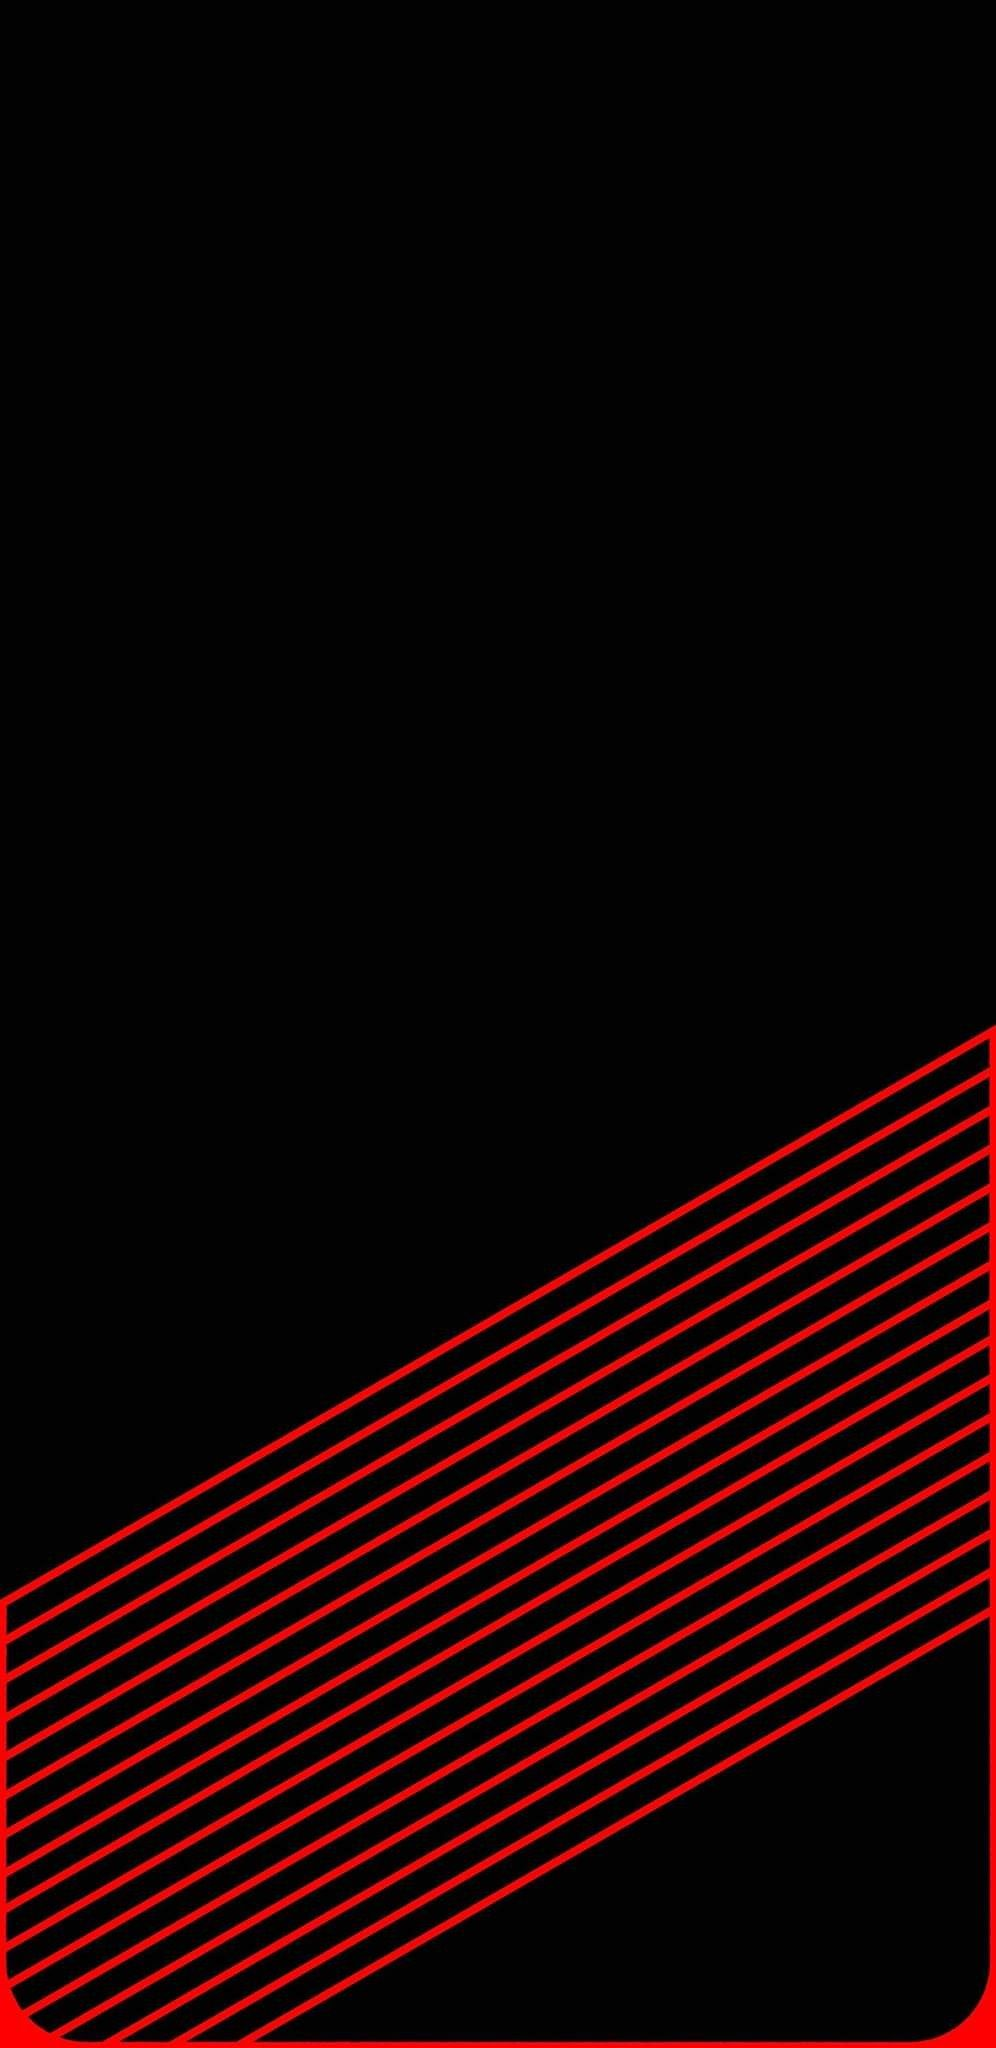 Aesthetic Black And Red Wallpapers Kolpaper Awesome Free Hd Wallpapers